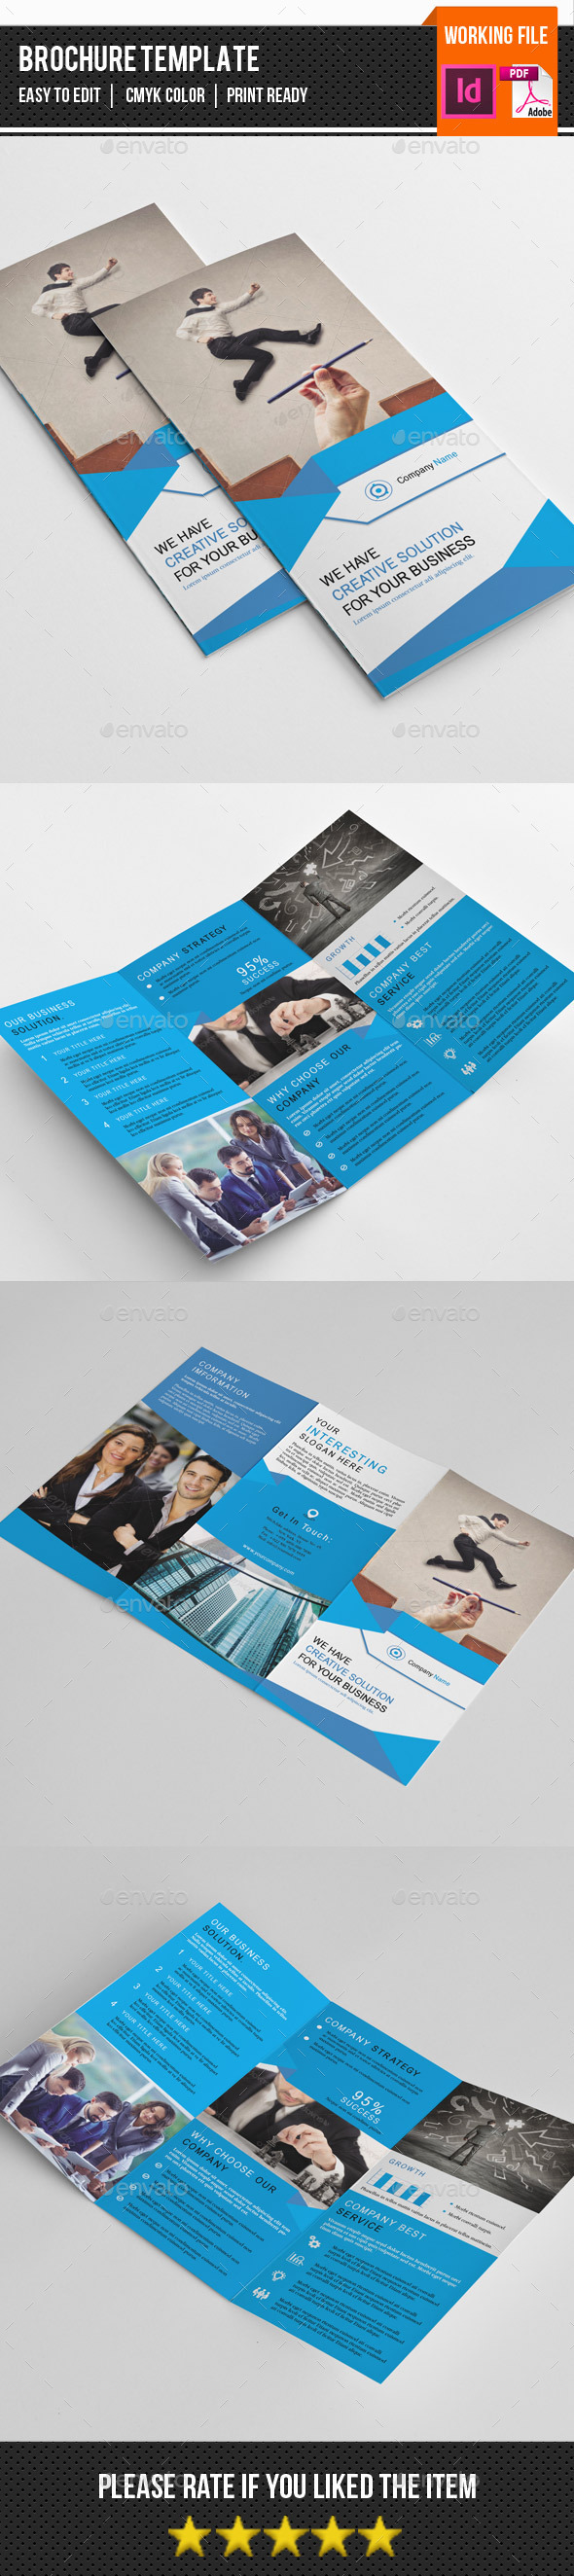 Corporate Trifold Brochure-V248 - Corporate Brochures